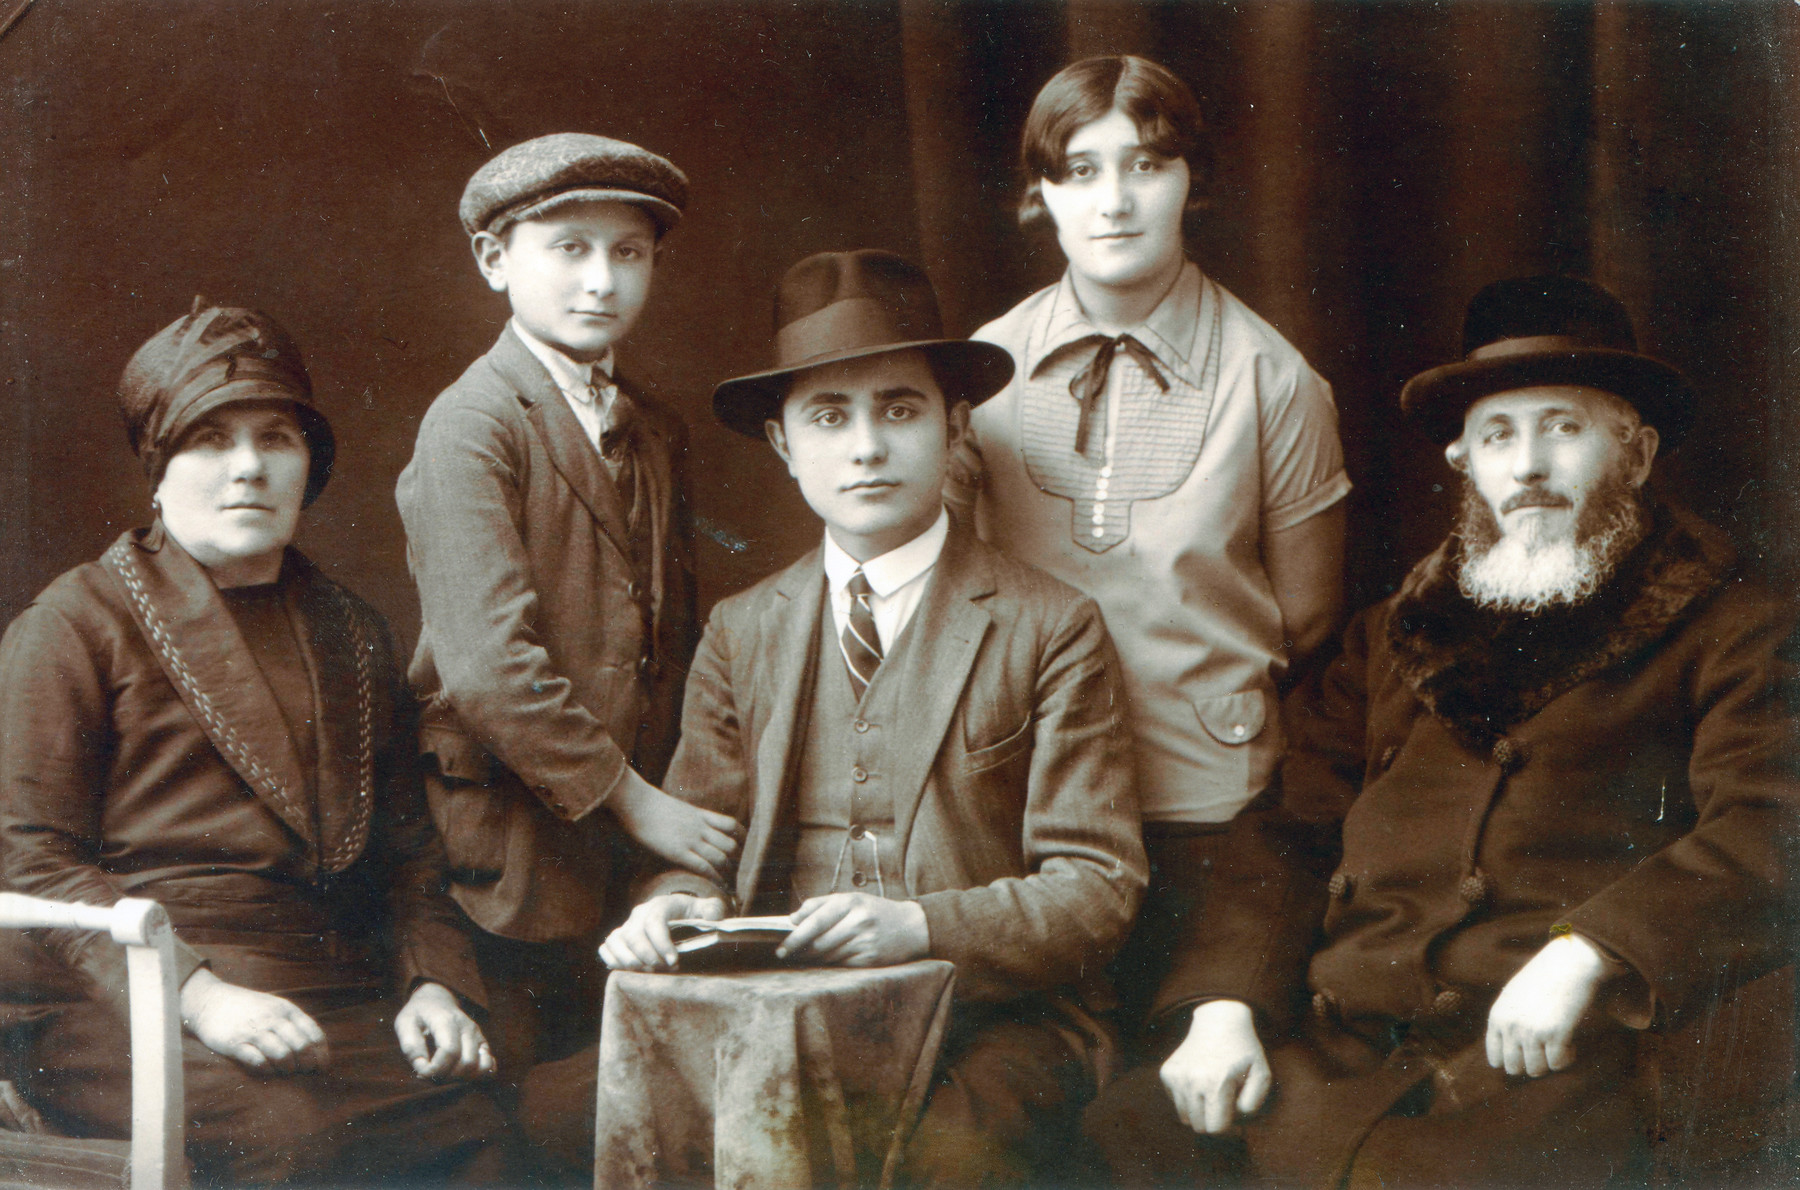 Studio portrait of the Meisels family.    Yehuda Lipot is seated in the center.  His parents Sara and Rabbi Shimon Chaim Meisels are on either side.  Standing behind are his brother Motchi and sister Margit.